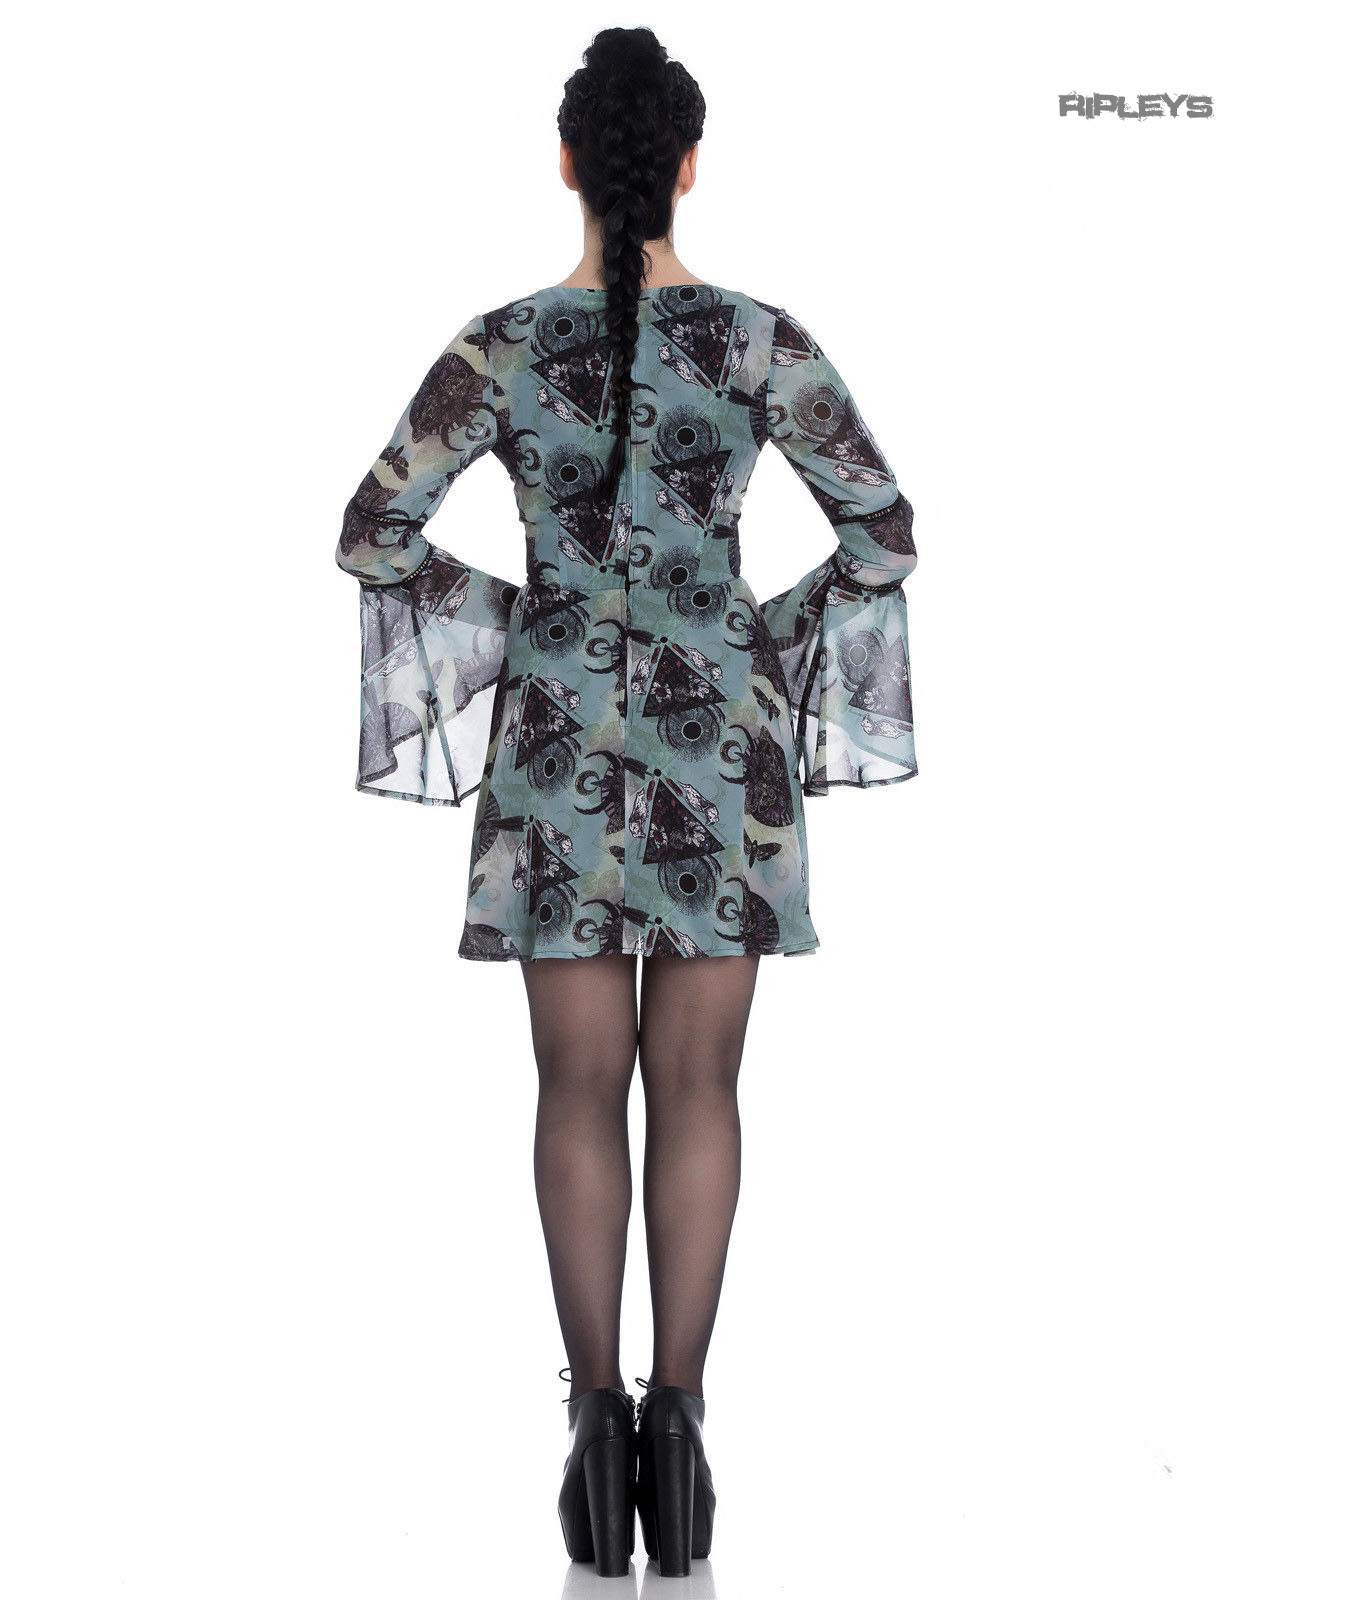 Hell-Bunny-Alchemy-Goth-Floaty-Witch-Mini-Dress-AFTER-DEATH-Teal-Green-All-Sizes thumbnail 20